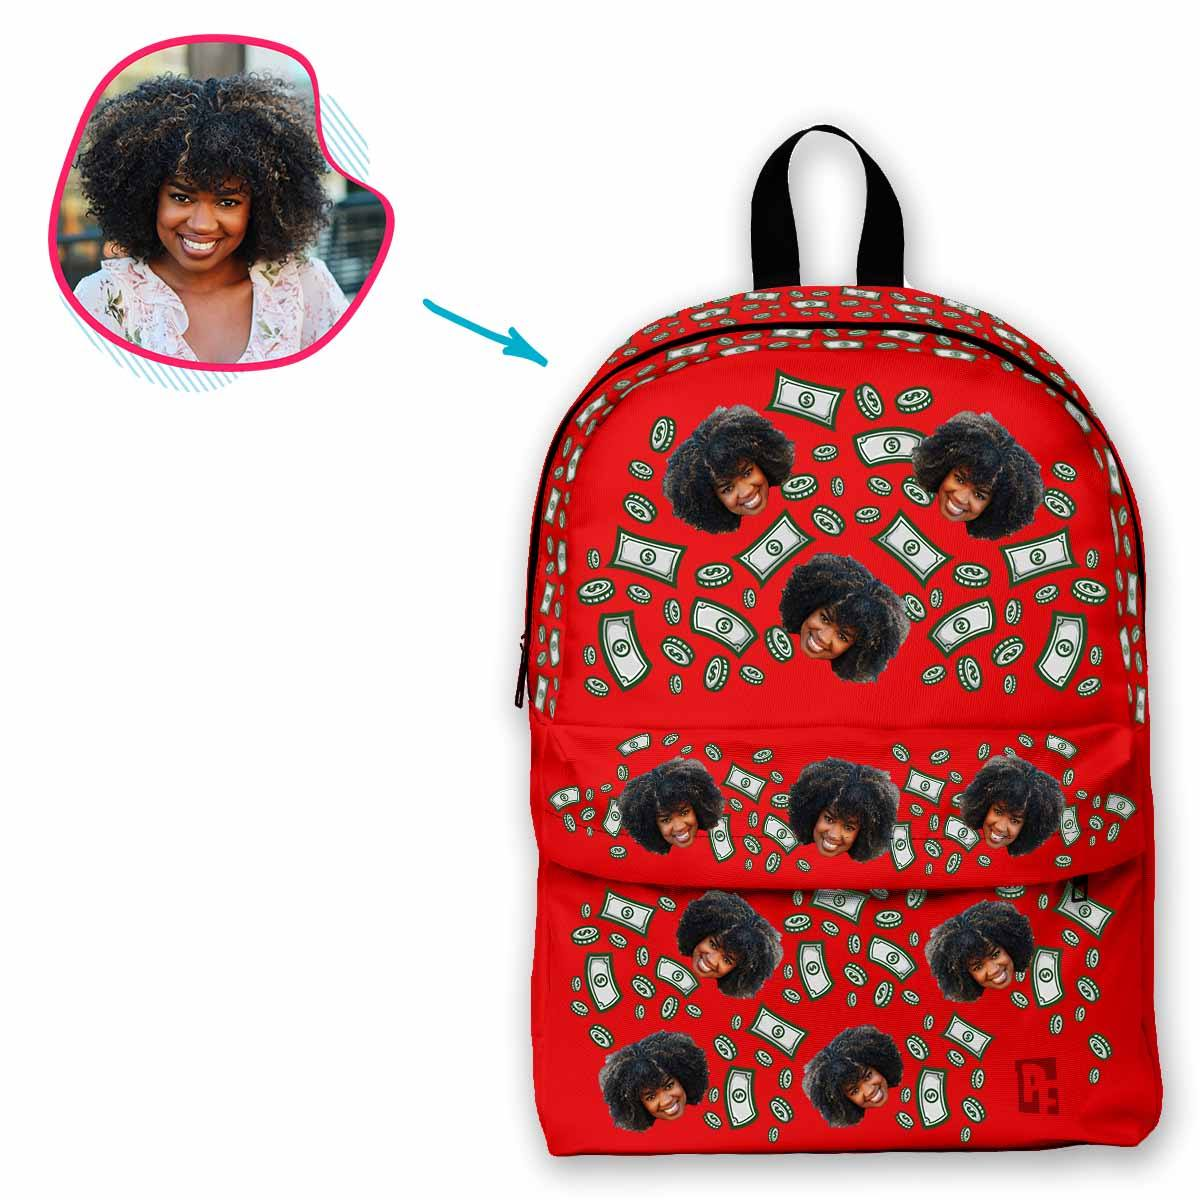 red Money classic backpack personalized with photo of face printed on it